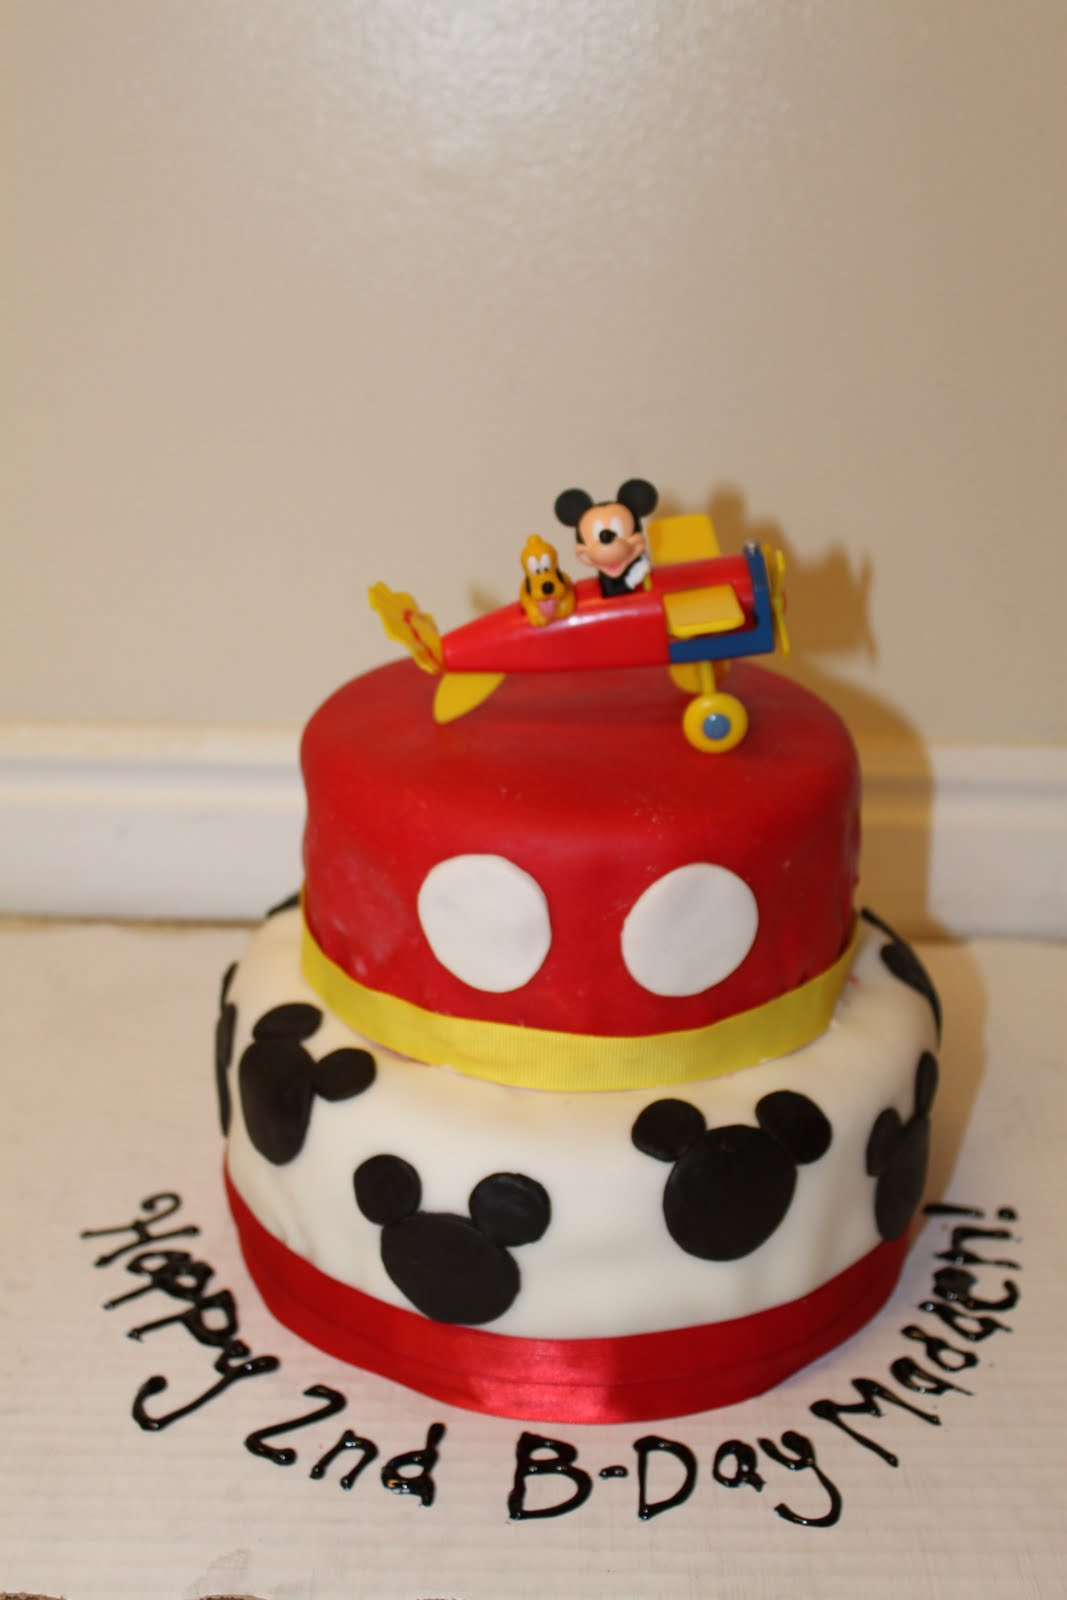 Connu Vanessa's Cake Designs: Mickey Mouse Cake AH49